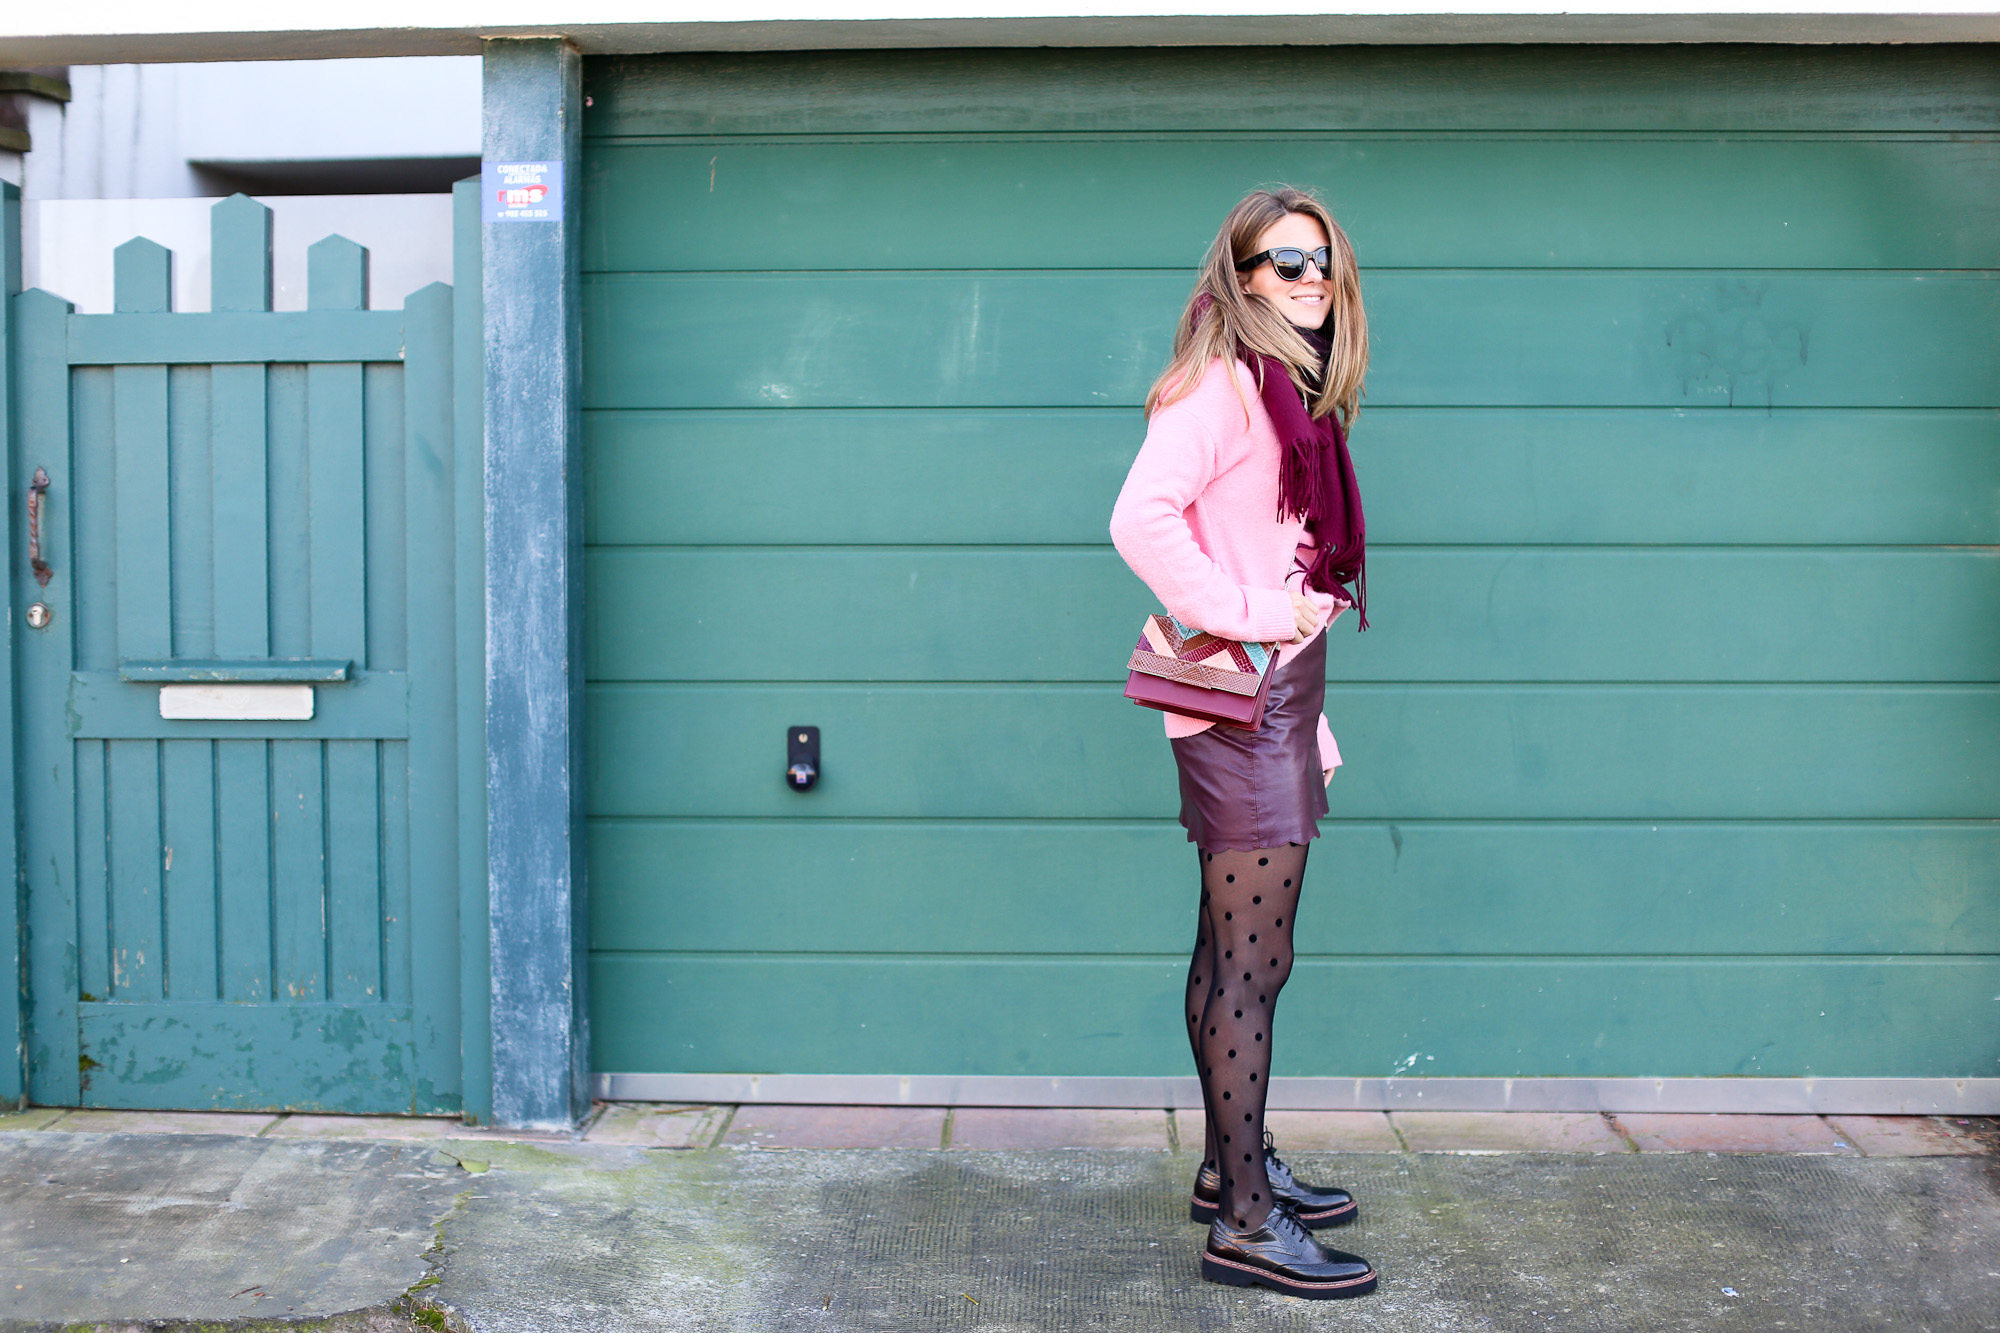 Clochet_streetstyle_fashionblogger_Max&Co_leatherminiskirt_andtherstories_pinksweater_celinesunglasses-3